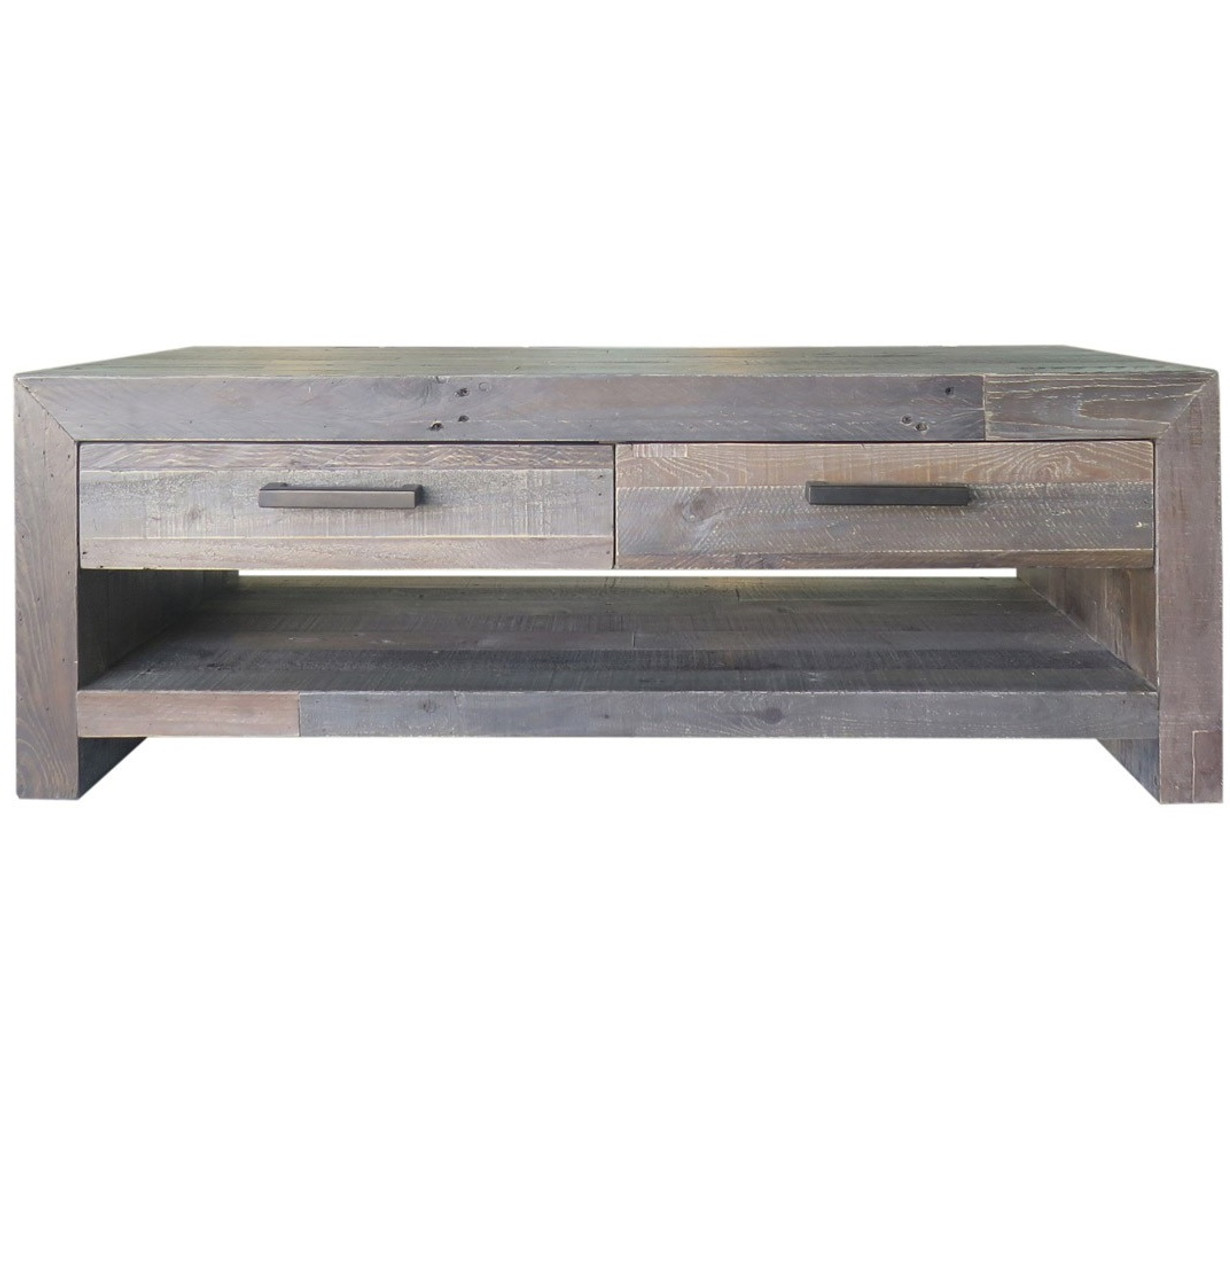 Angora storm reclaimed wood 4 drawer coffee table zin home angora storm reclaimed wood 4 drawer coffee table geotapseo Image collections